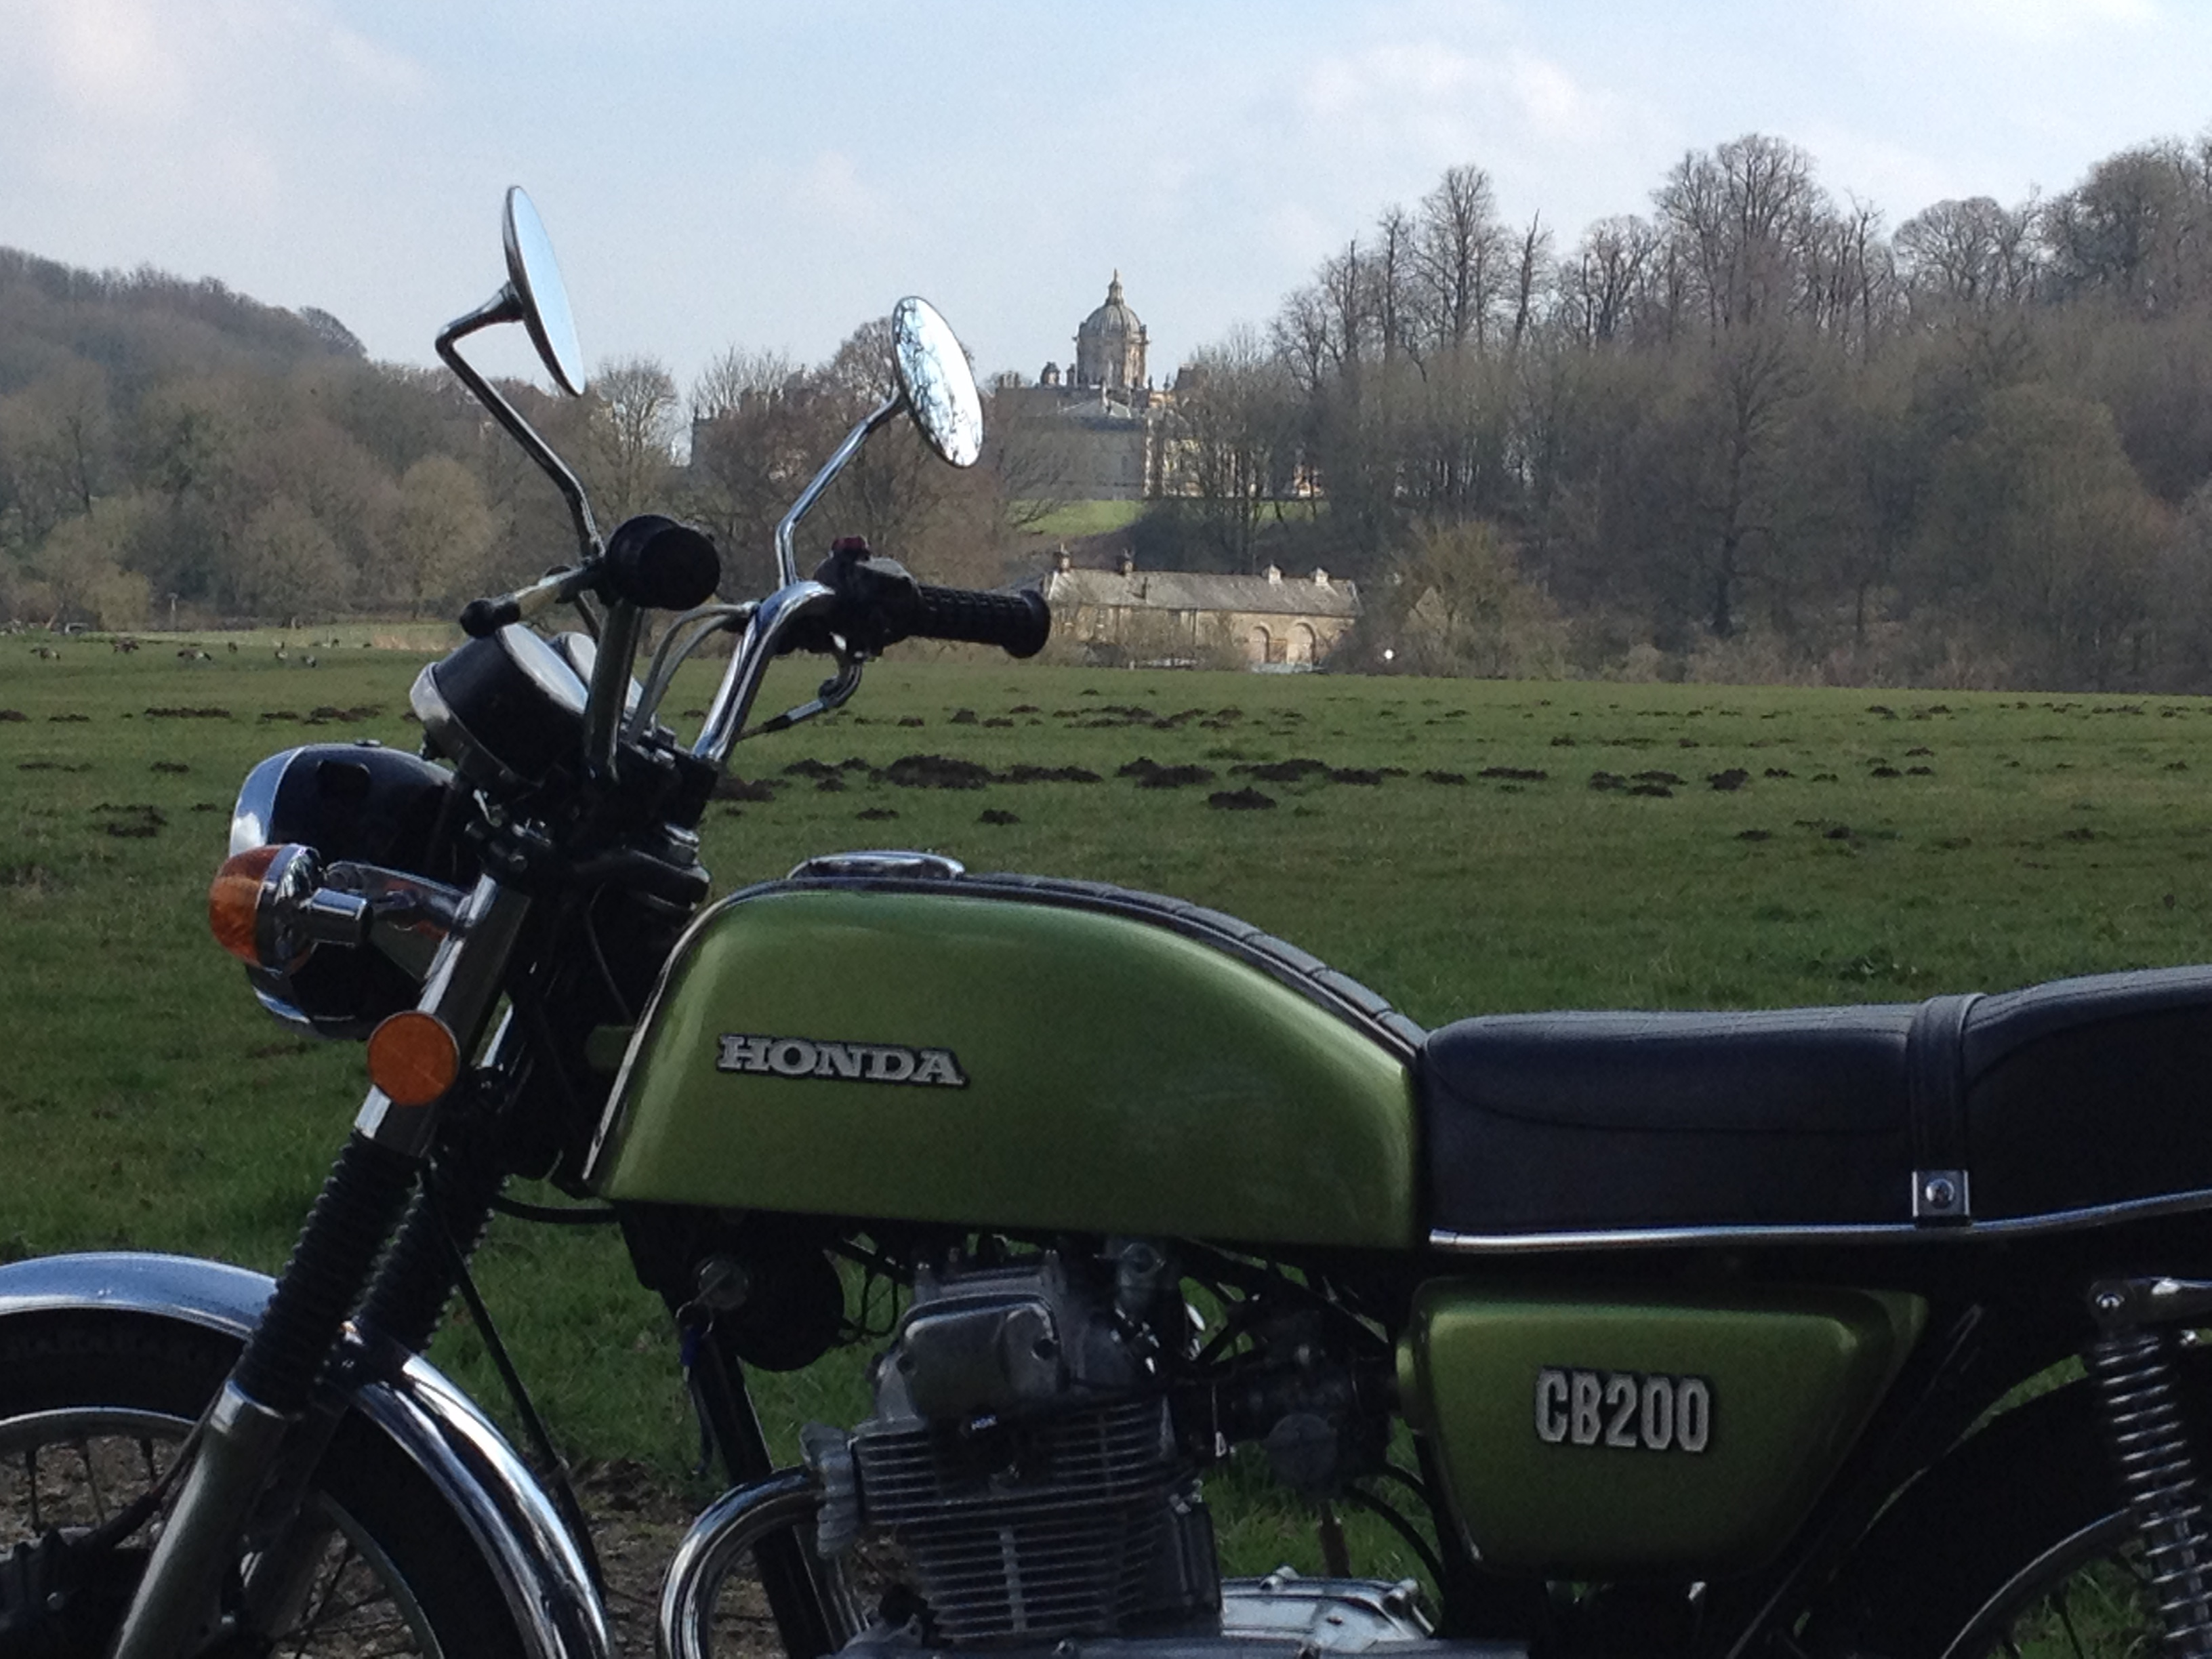 CB200 Olive is back on the road again-bike-ride-out-89-miles-helmsley-surounding-villages-3.4.16-010.jpg